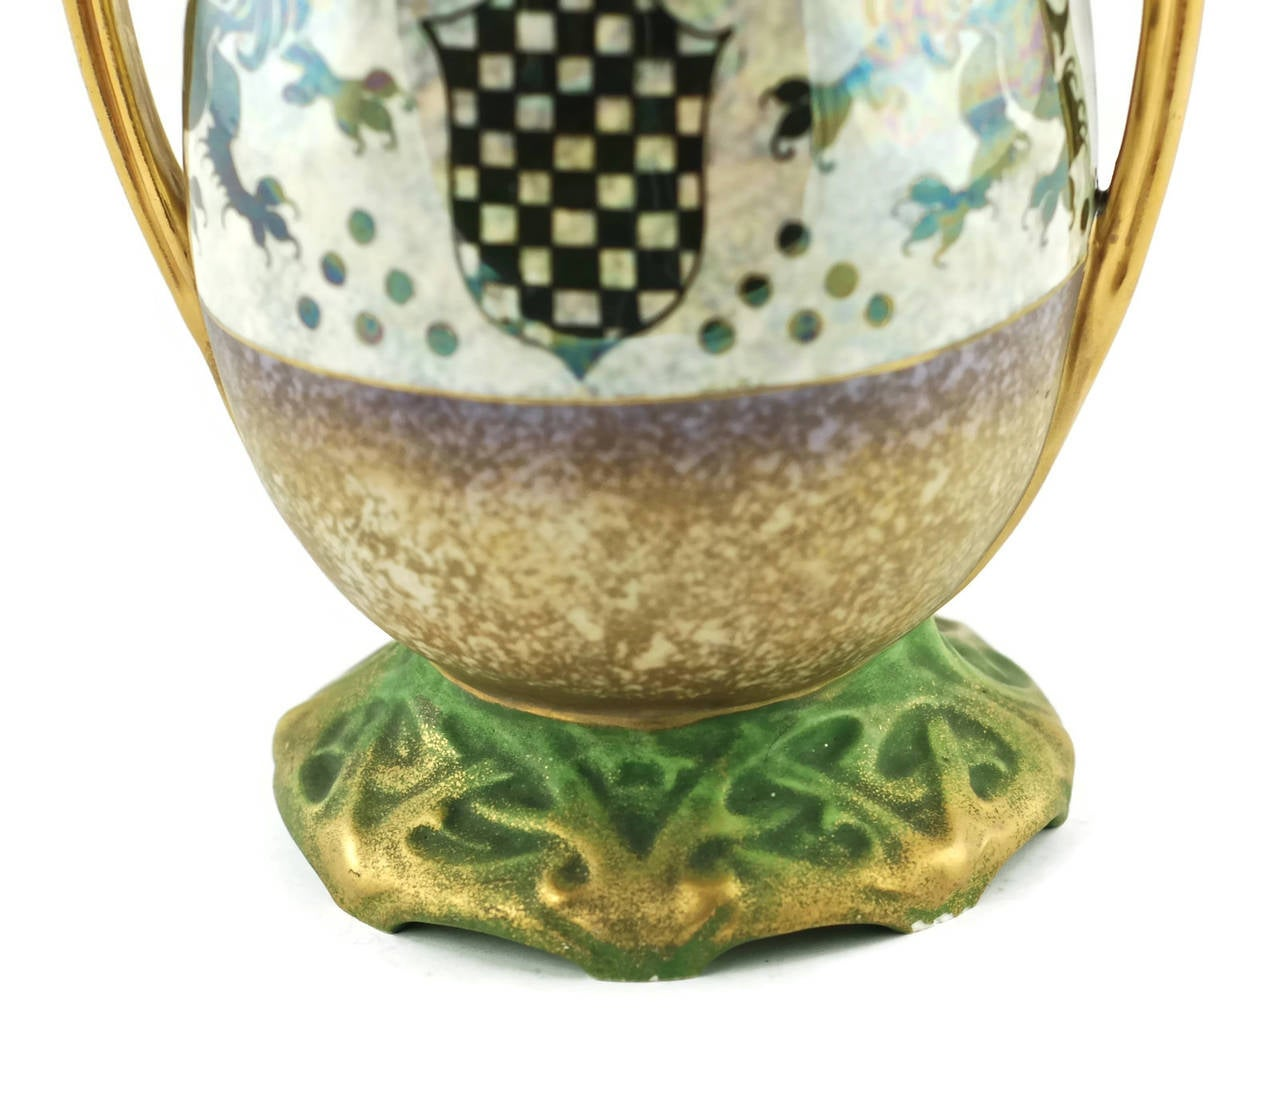 Riessner & Kessel Amphora Turn Teplitz Two-Handled Vase with Iridized Glaze In Excellent Condition For Sale In Cincinnati, OH